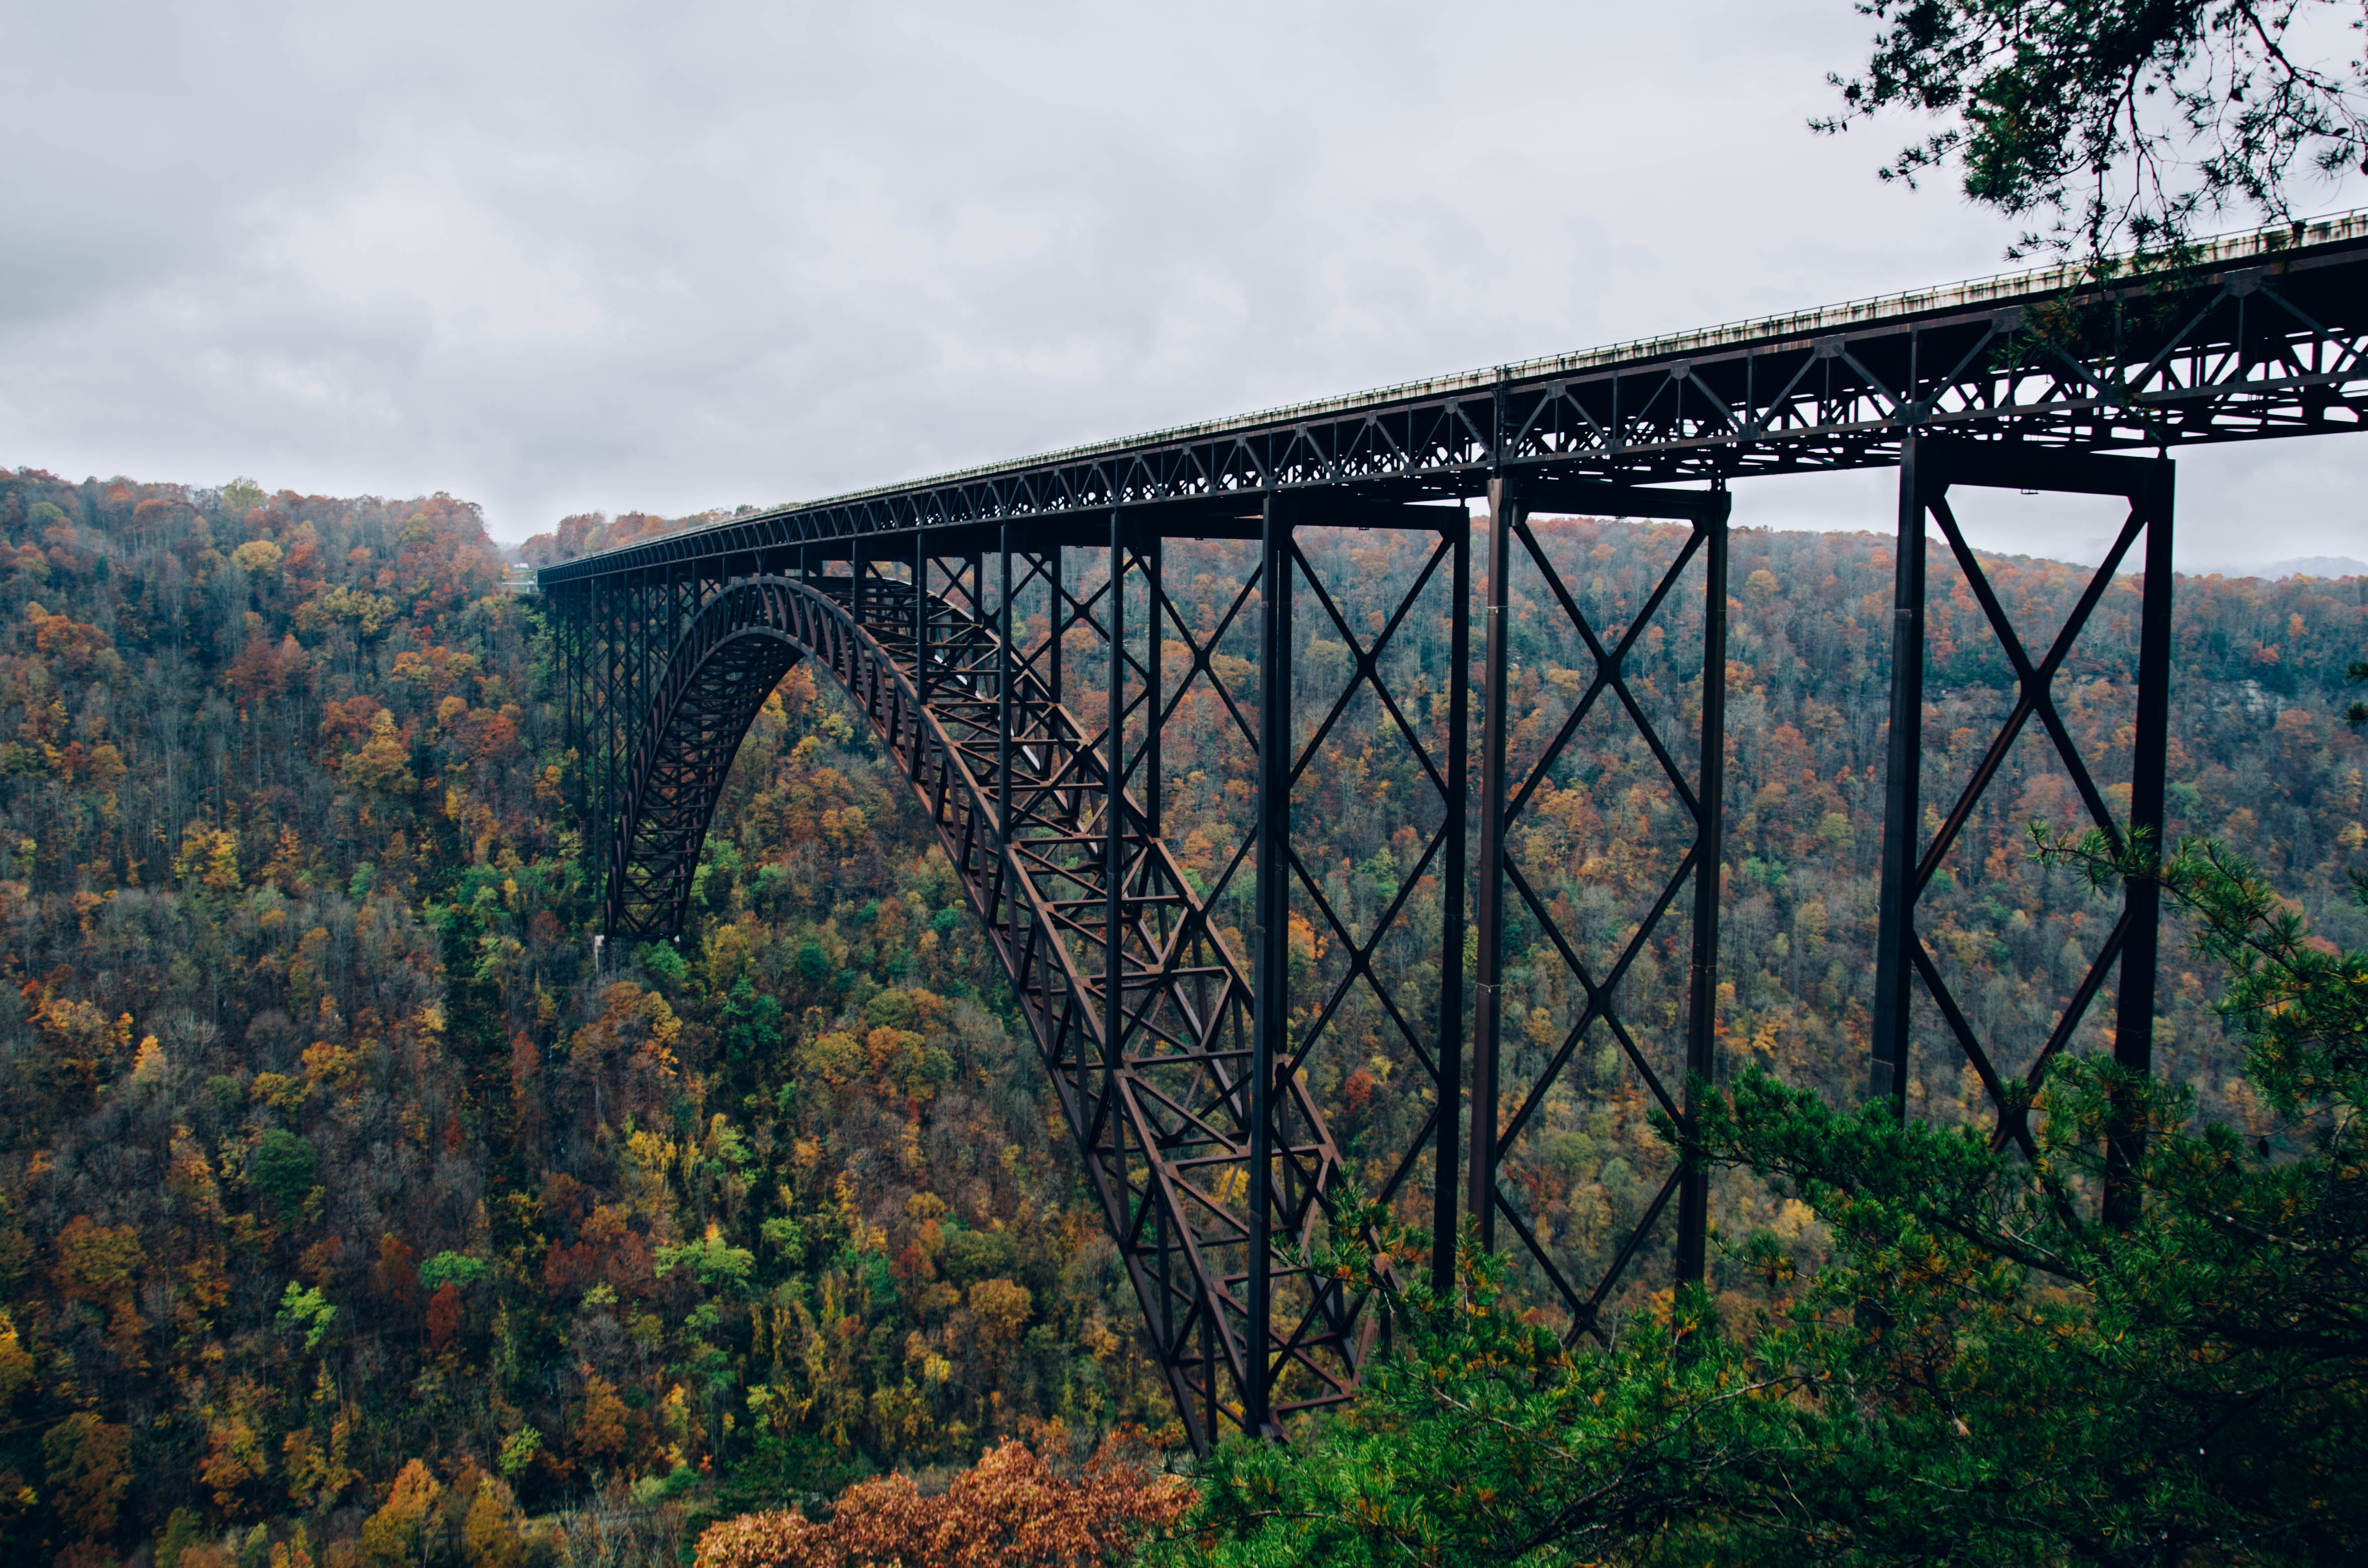 A long old steel bridge over a wooded ravine in Fayetteville